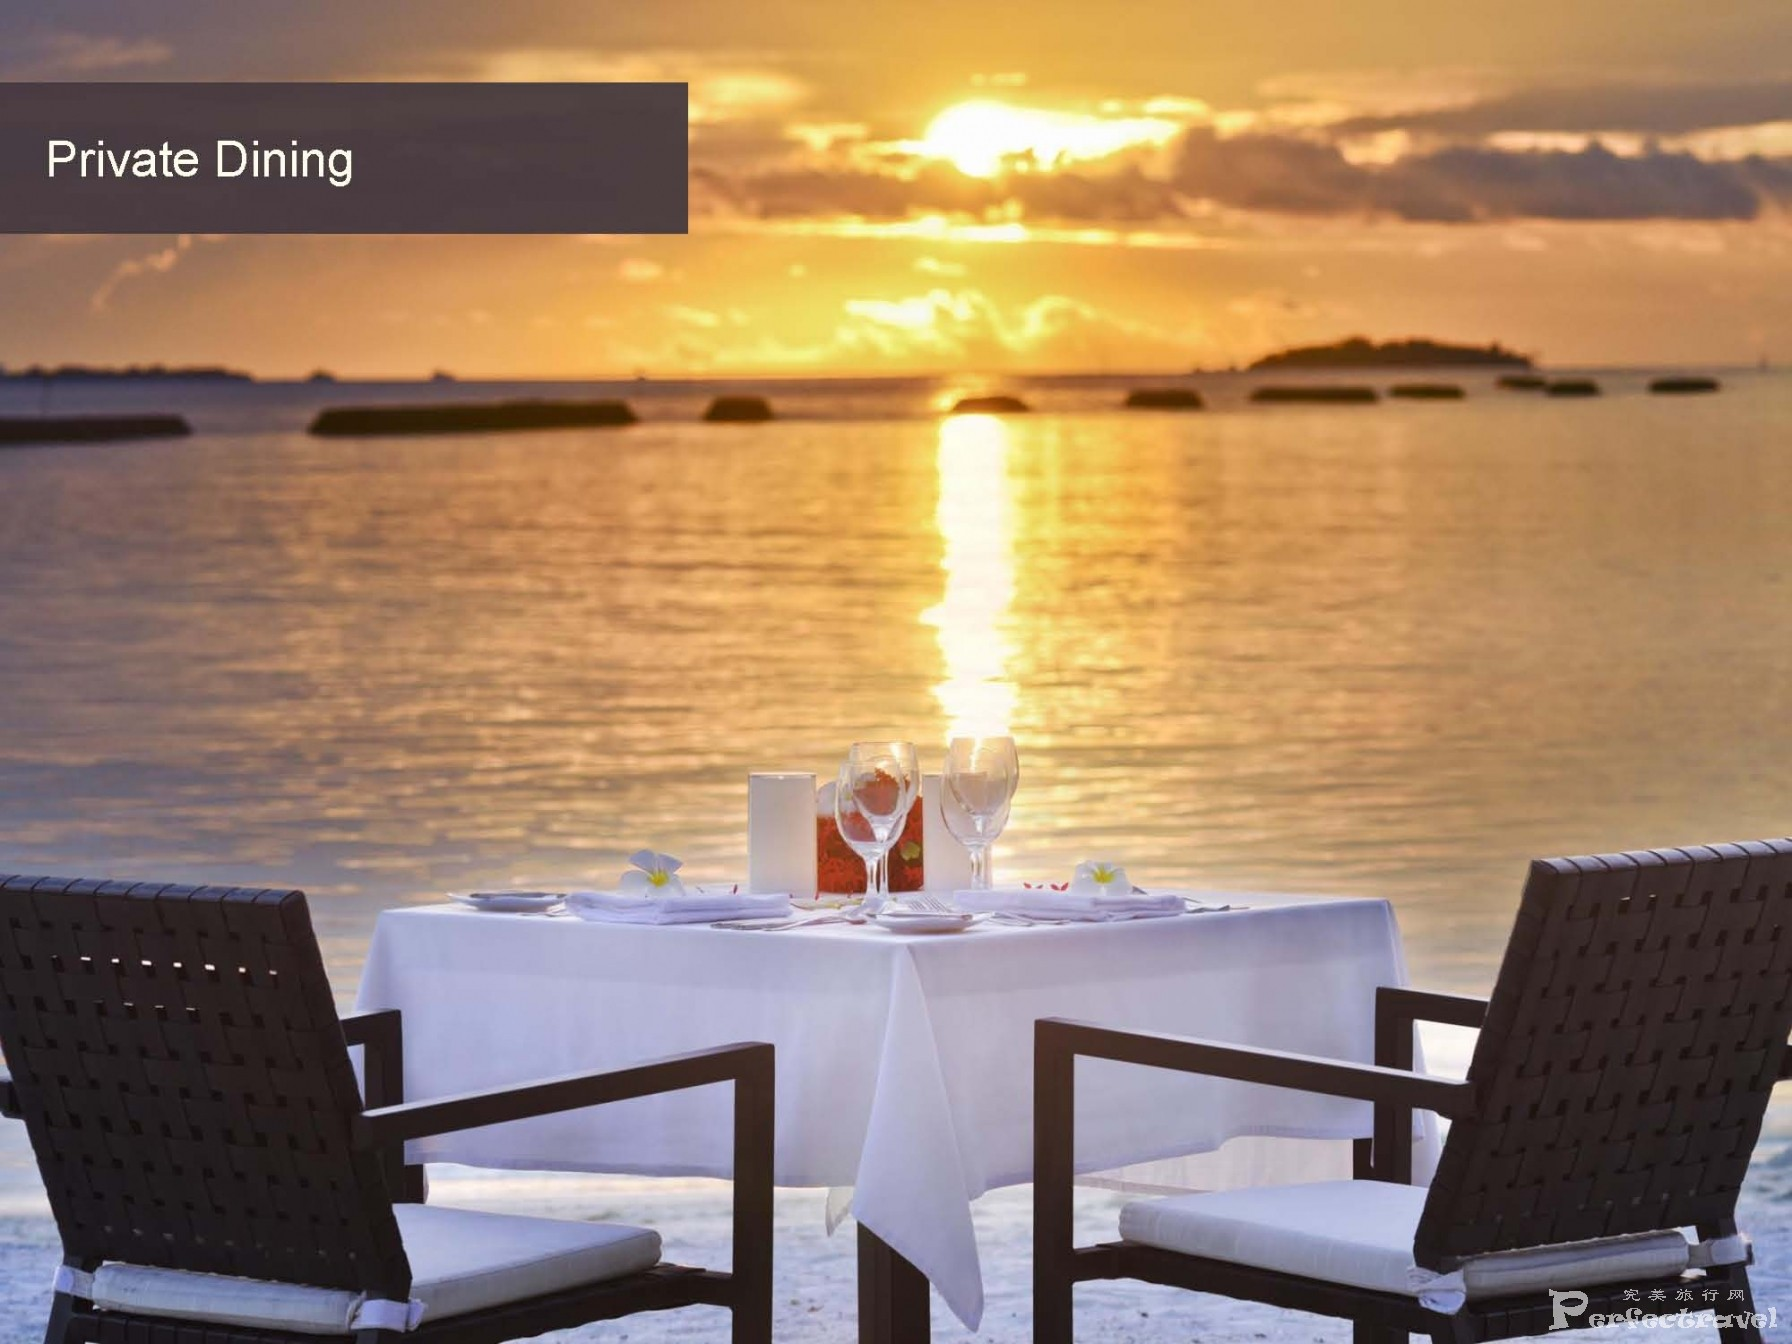 Sheraton Maldives - Overview Presentation 2015_Page_26.jpg